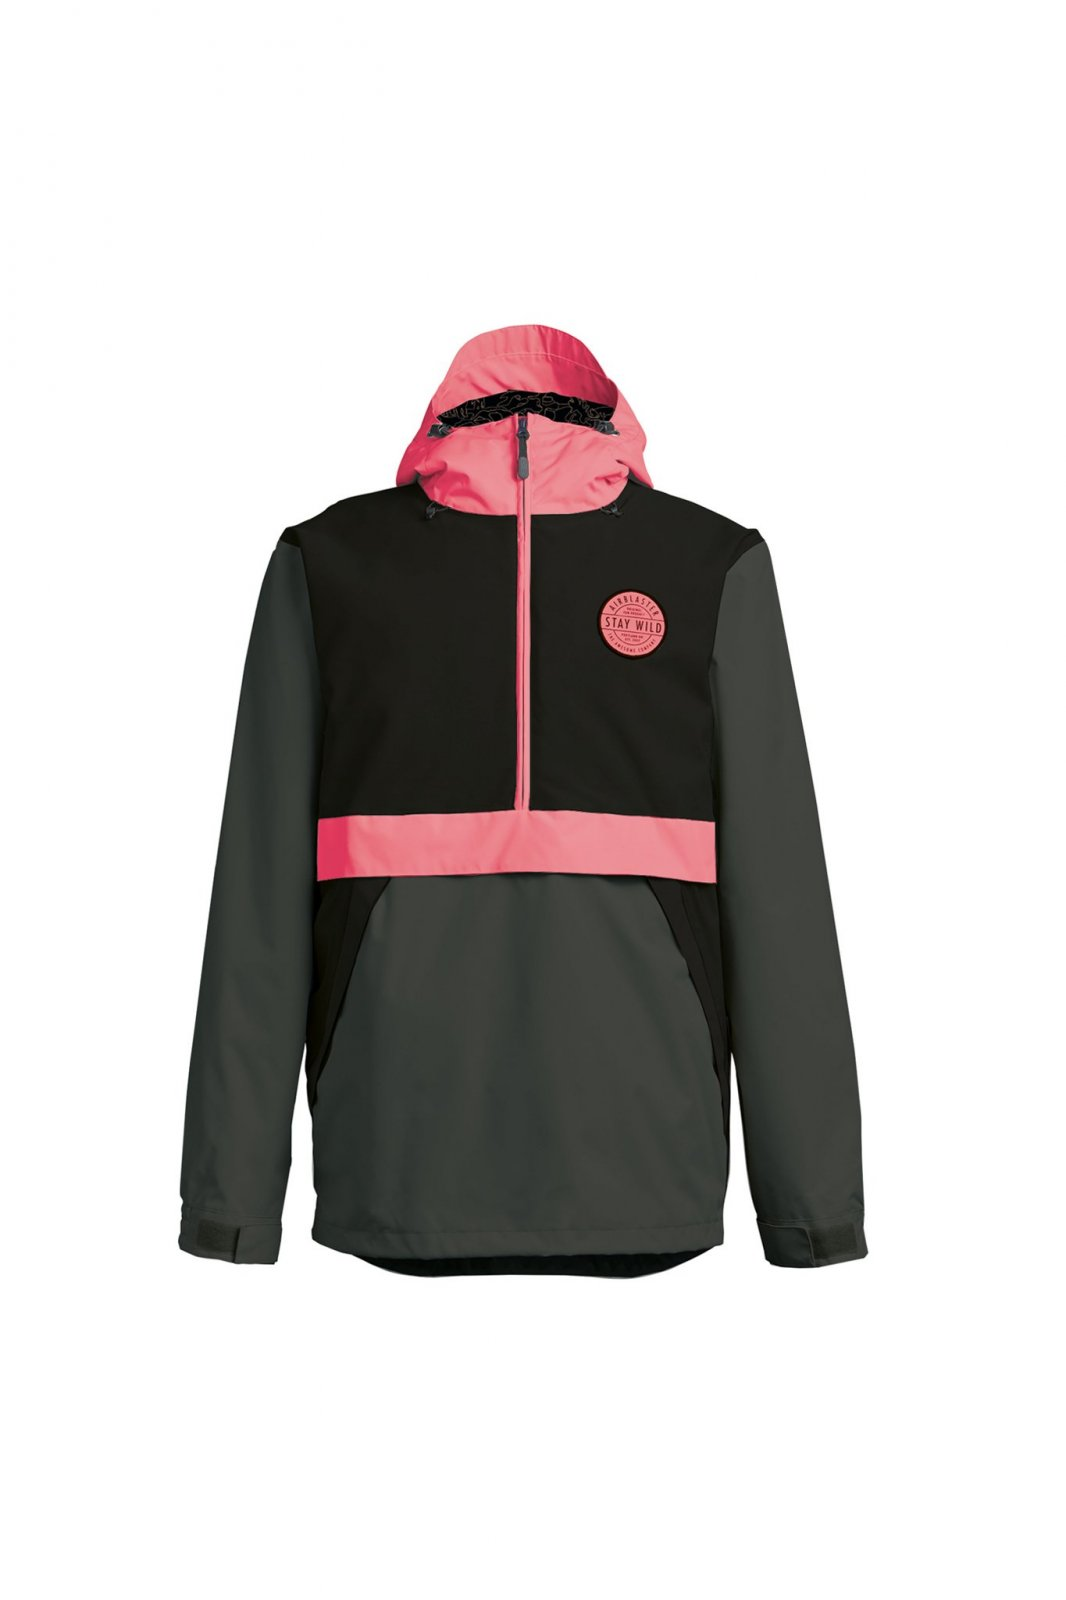 Airblaster Trenchover Jacket (Multiple Color Options)